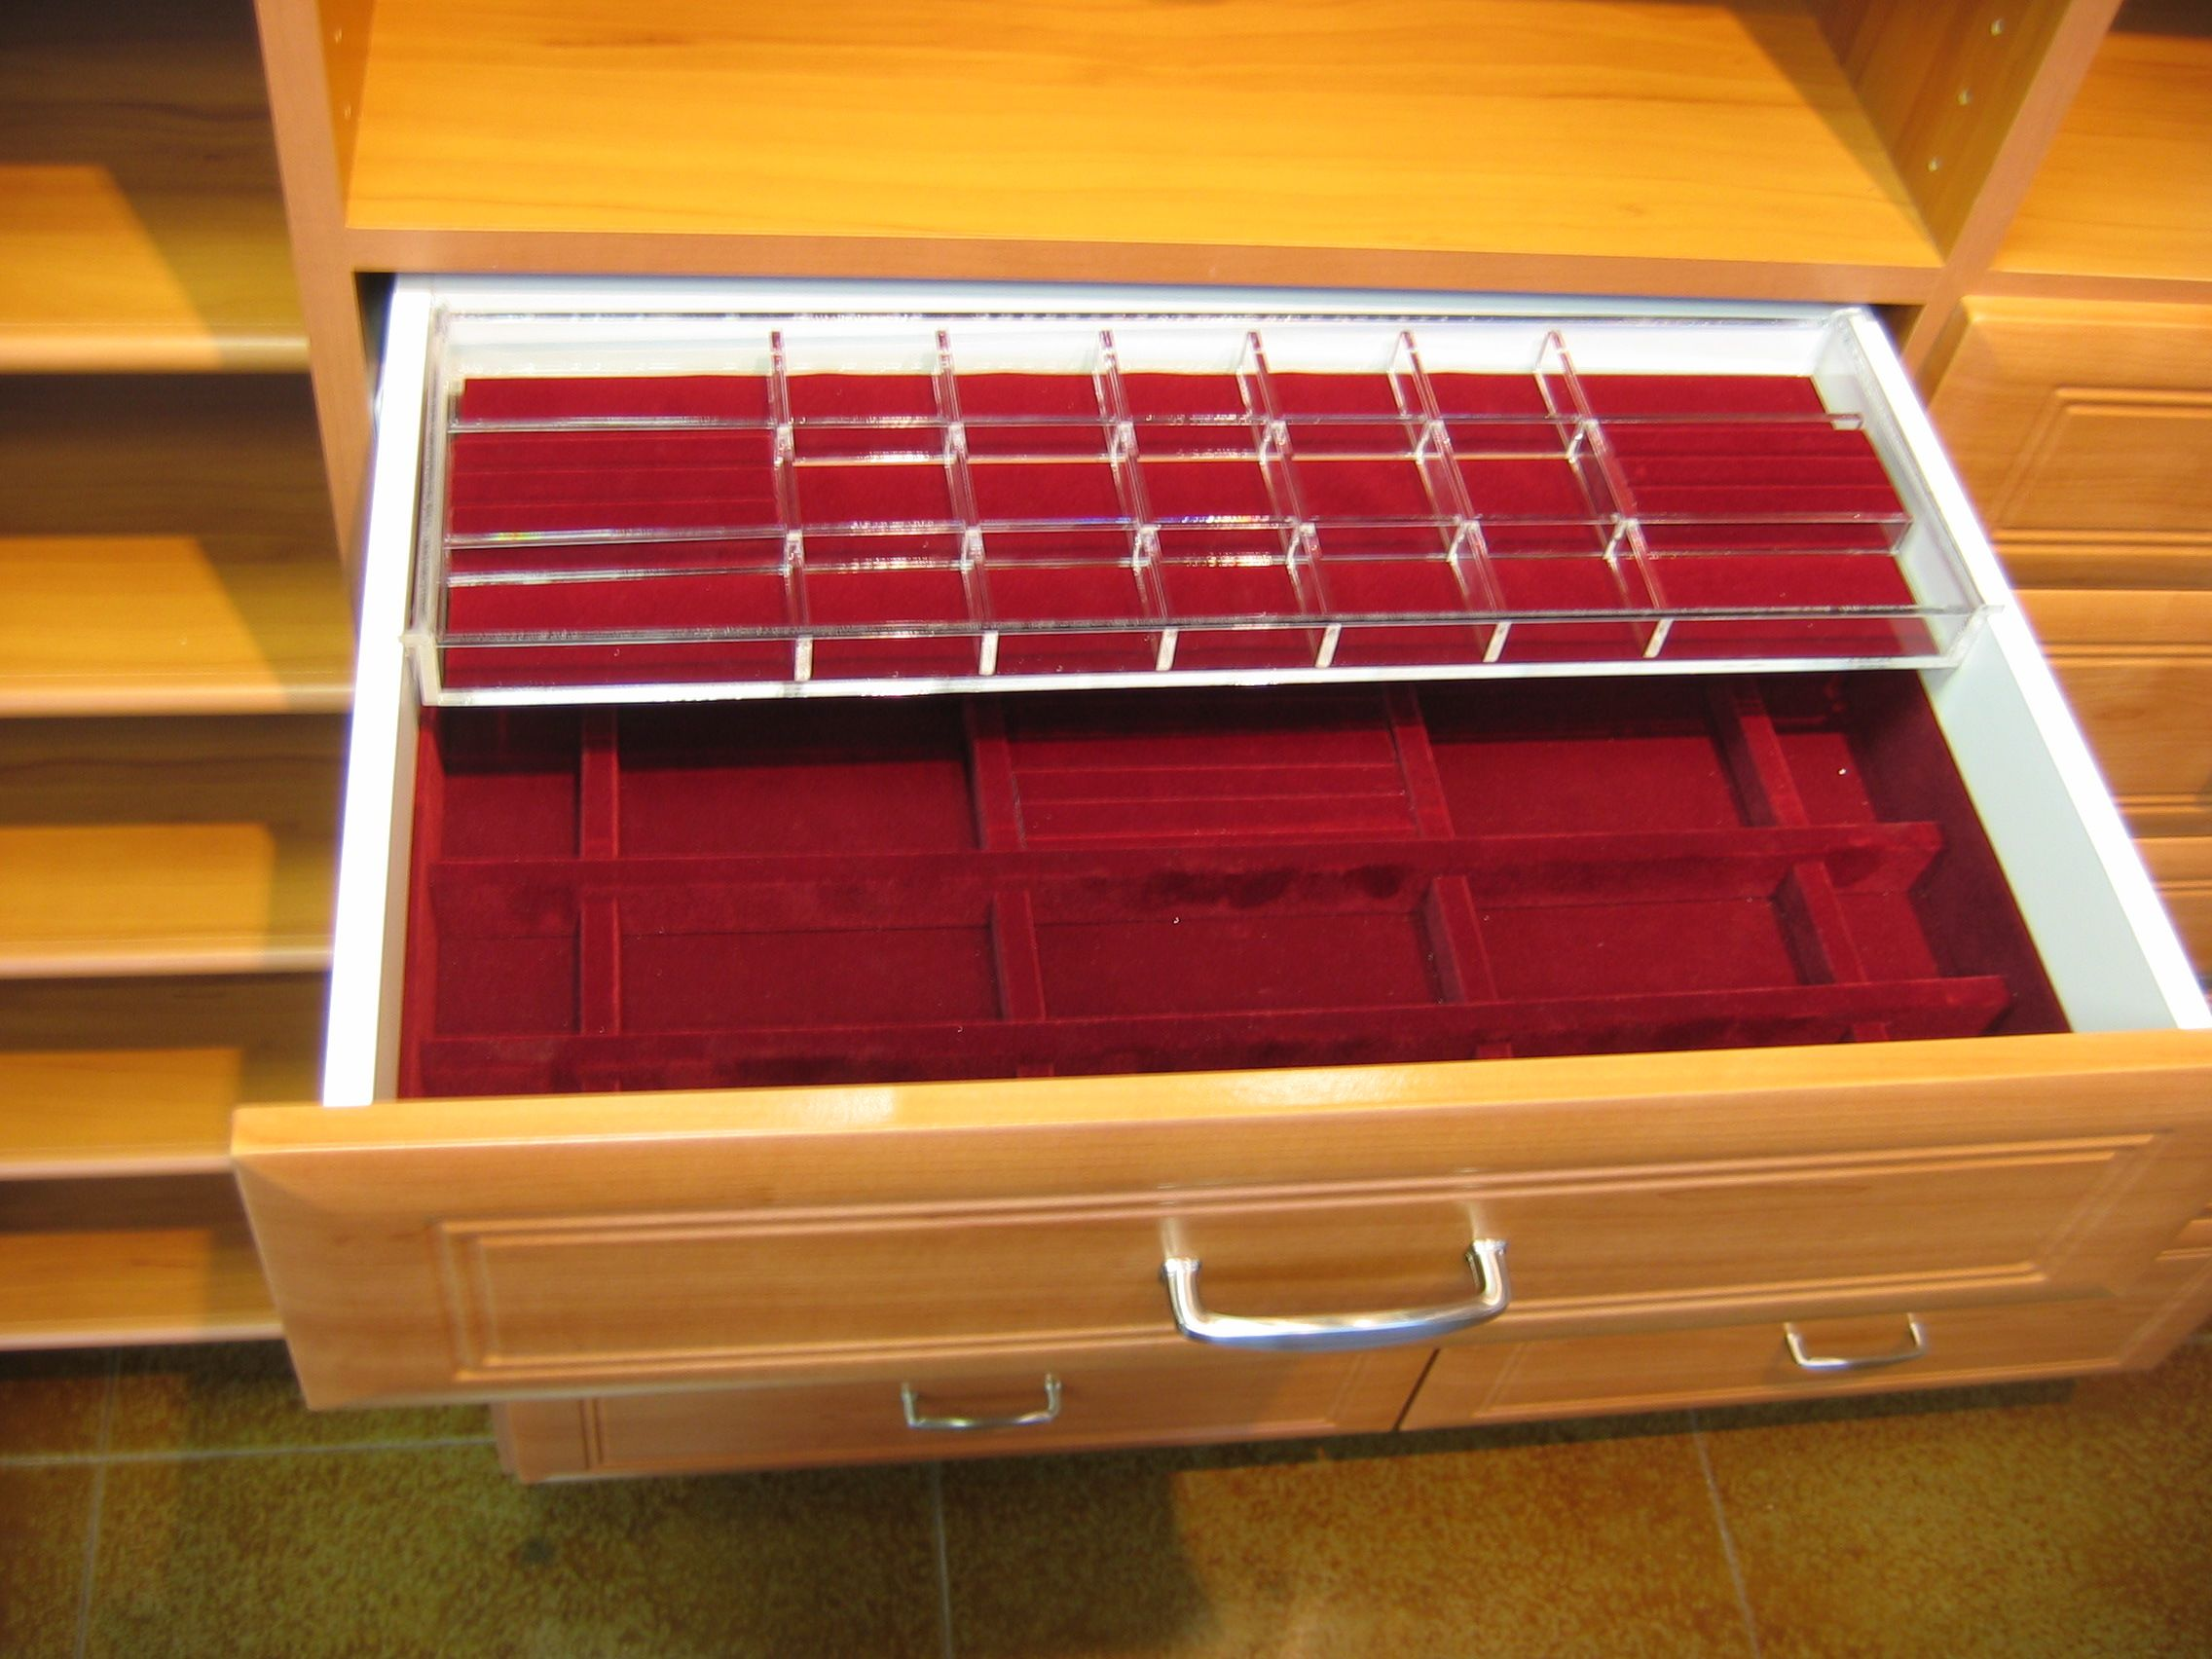 Cly Jewelry Drawer Organizer Available In Red Or Black Velvet Inserts Single Double